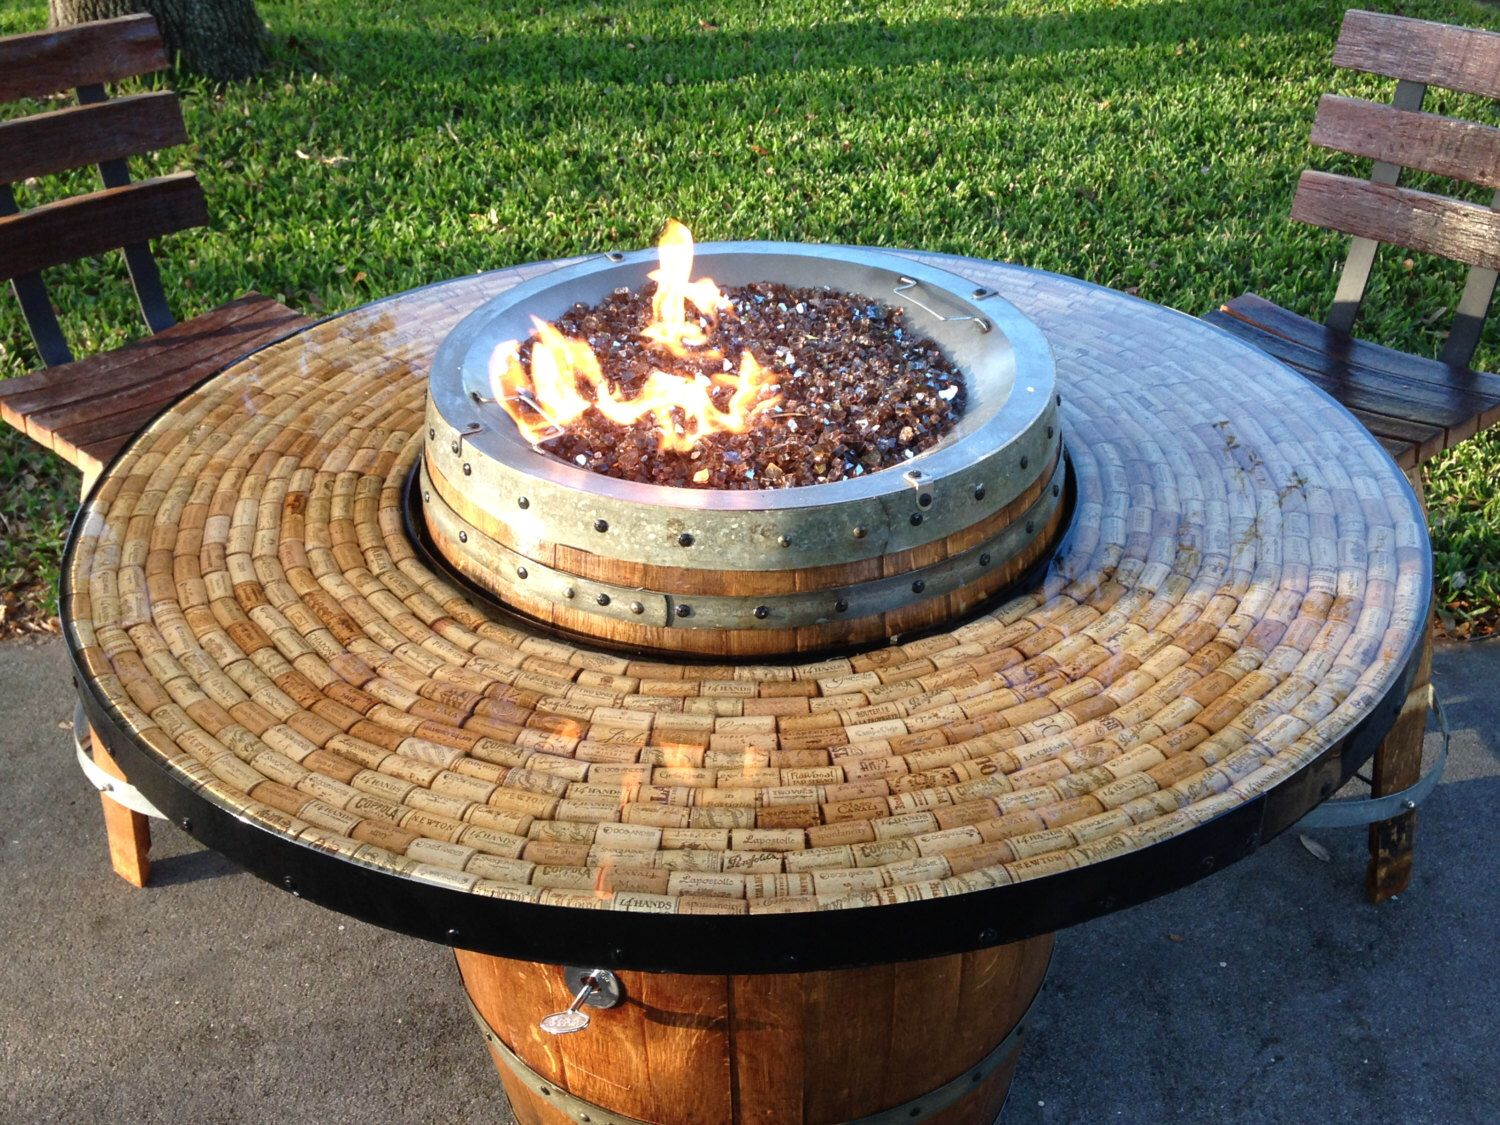 Wine Barrel Gas Fire Pit and Patio Table - Wine Barrel Gas Fire Pit And Patio Table Gas Fire Pits, Gas Fires